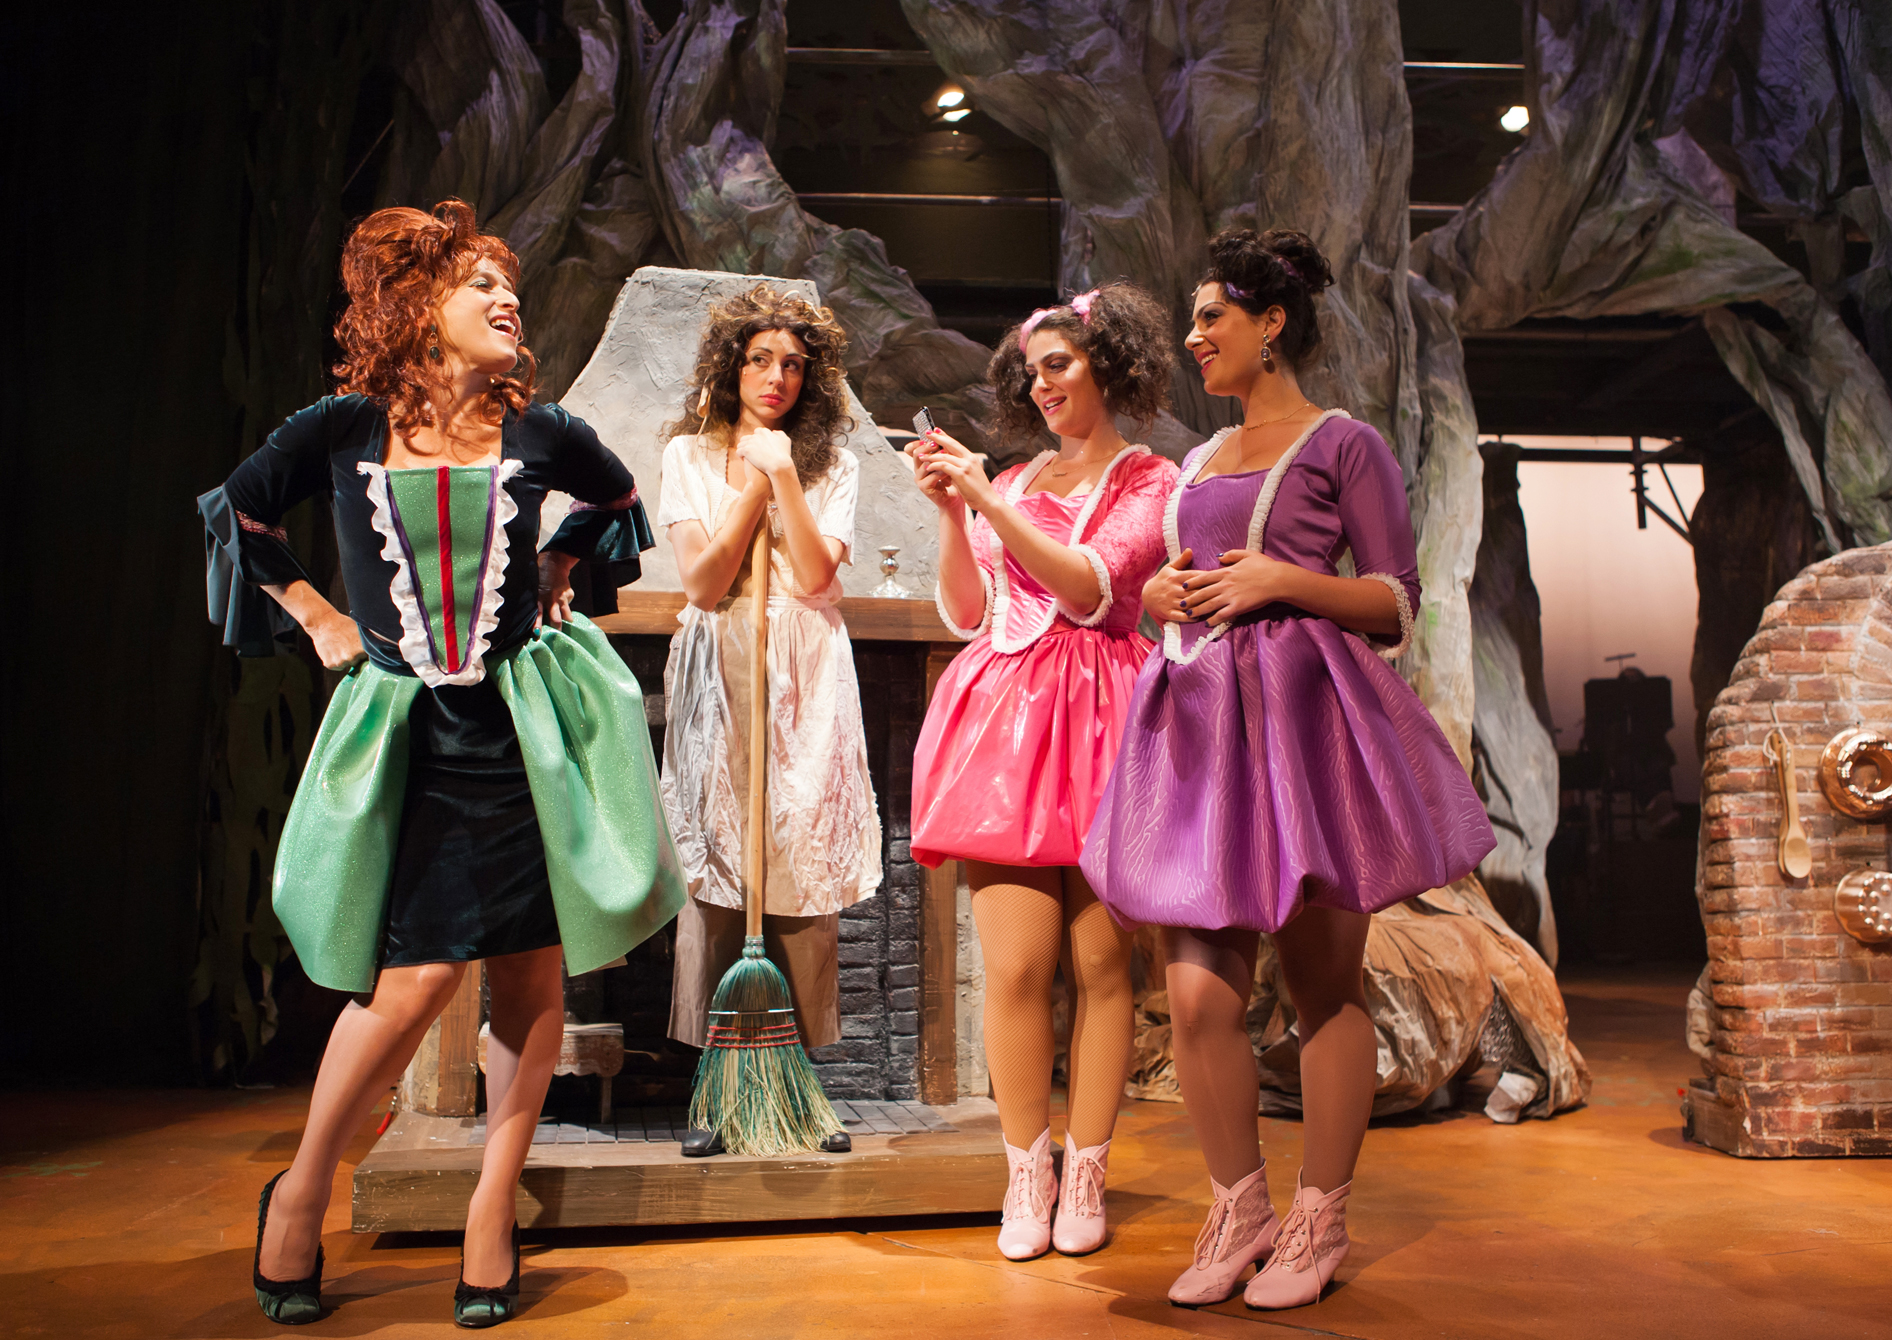 Cinderella's Stepmother (Bekka Fink), taunts Cinderella (Monique Hafen*) about going to the King's Festival while stepsisters Lucinda (Lily Drexler) and Florinda (Michelle Drexler) look on.